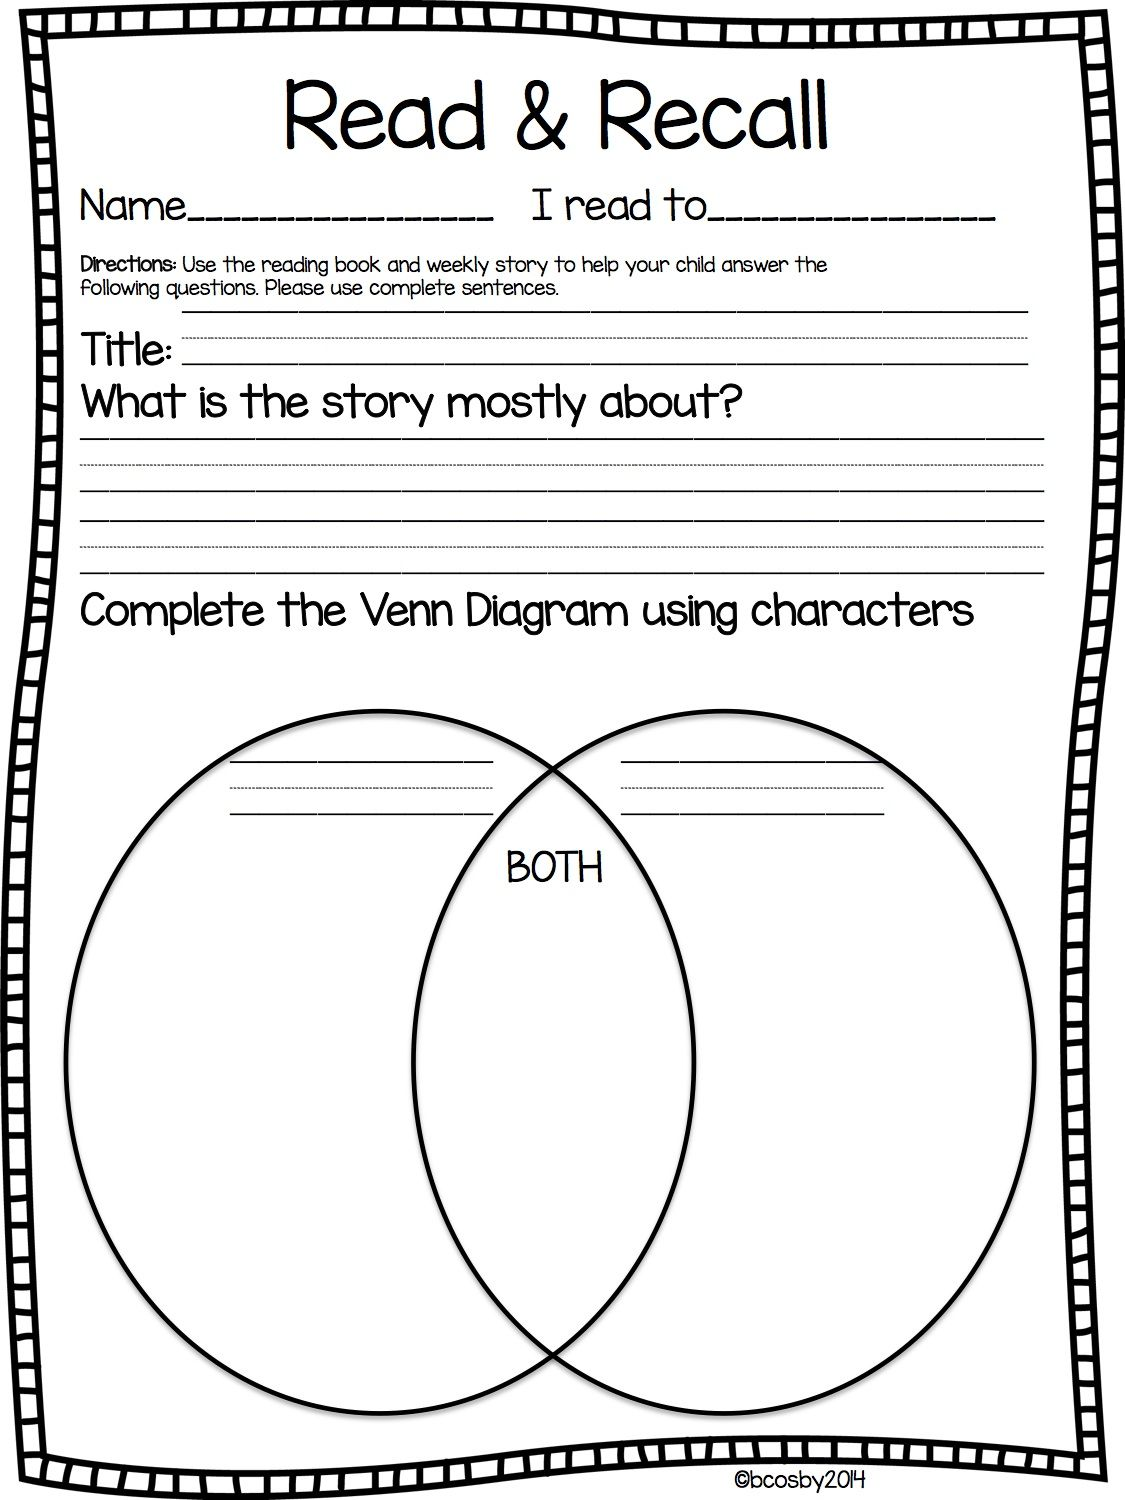 Read Amp Recall Comprehension Graphic Organizer